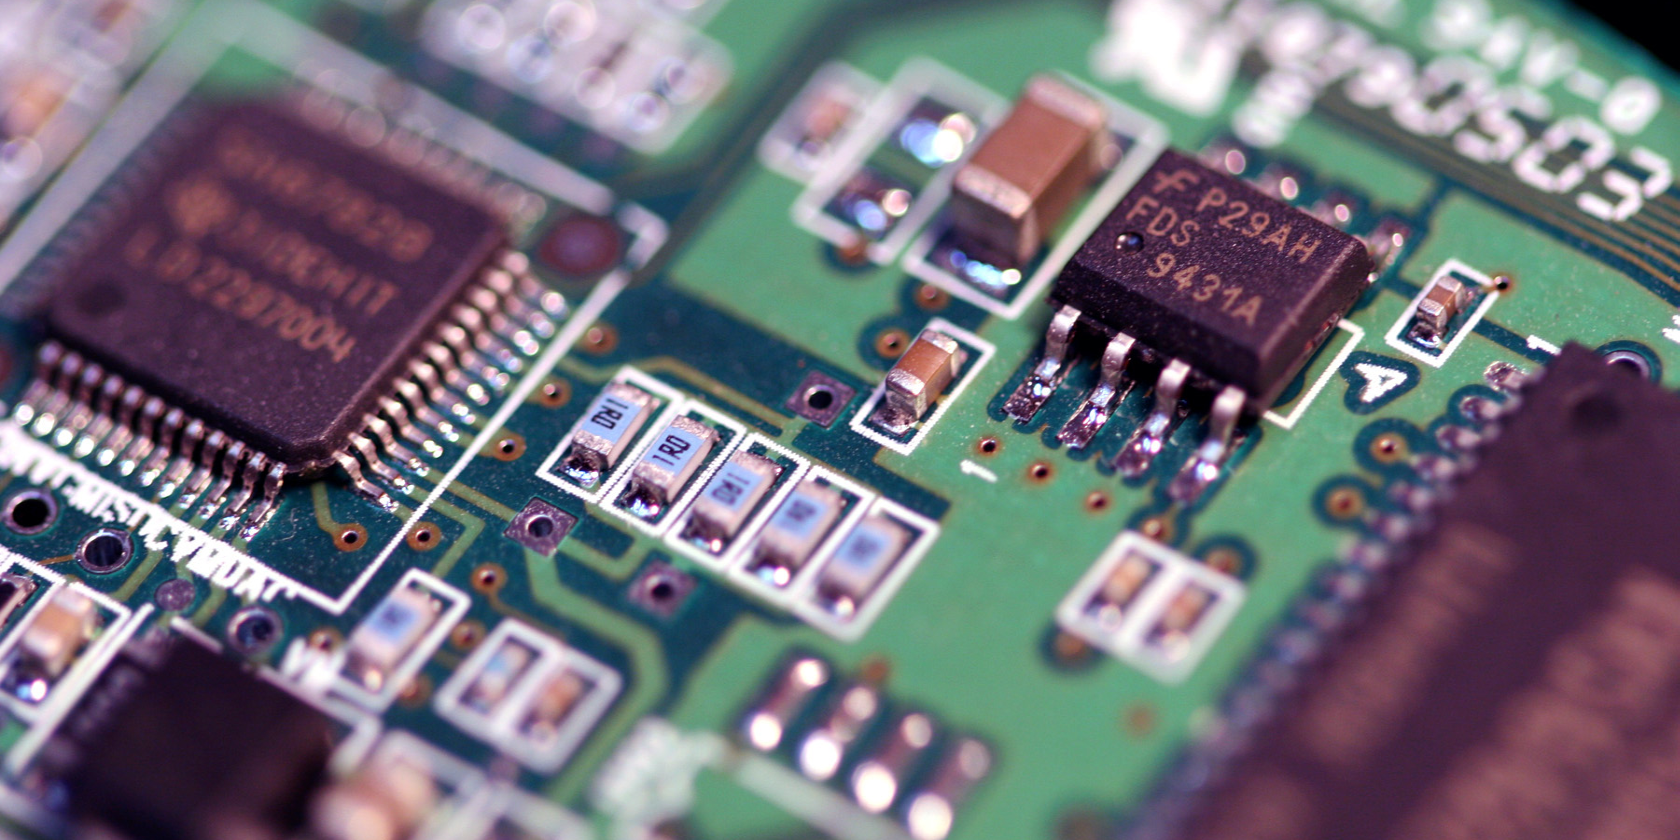 Autodesk and Circuits.io Launch New Electronics Design Tool 123D Circuits